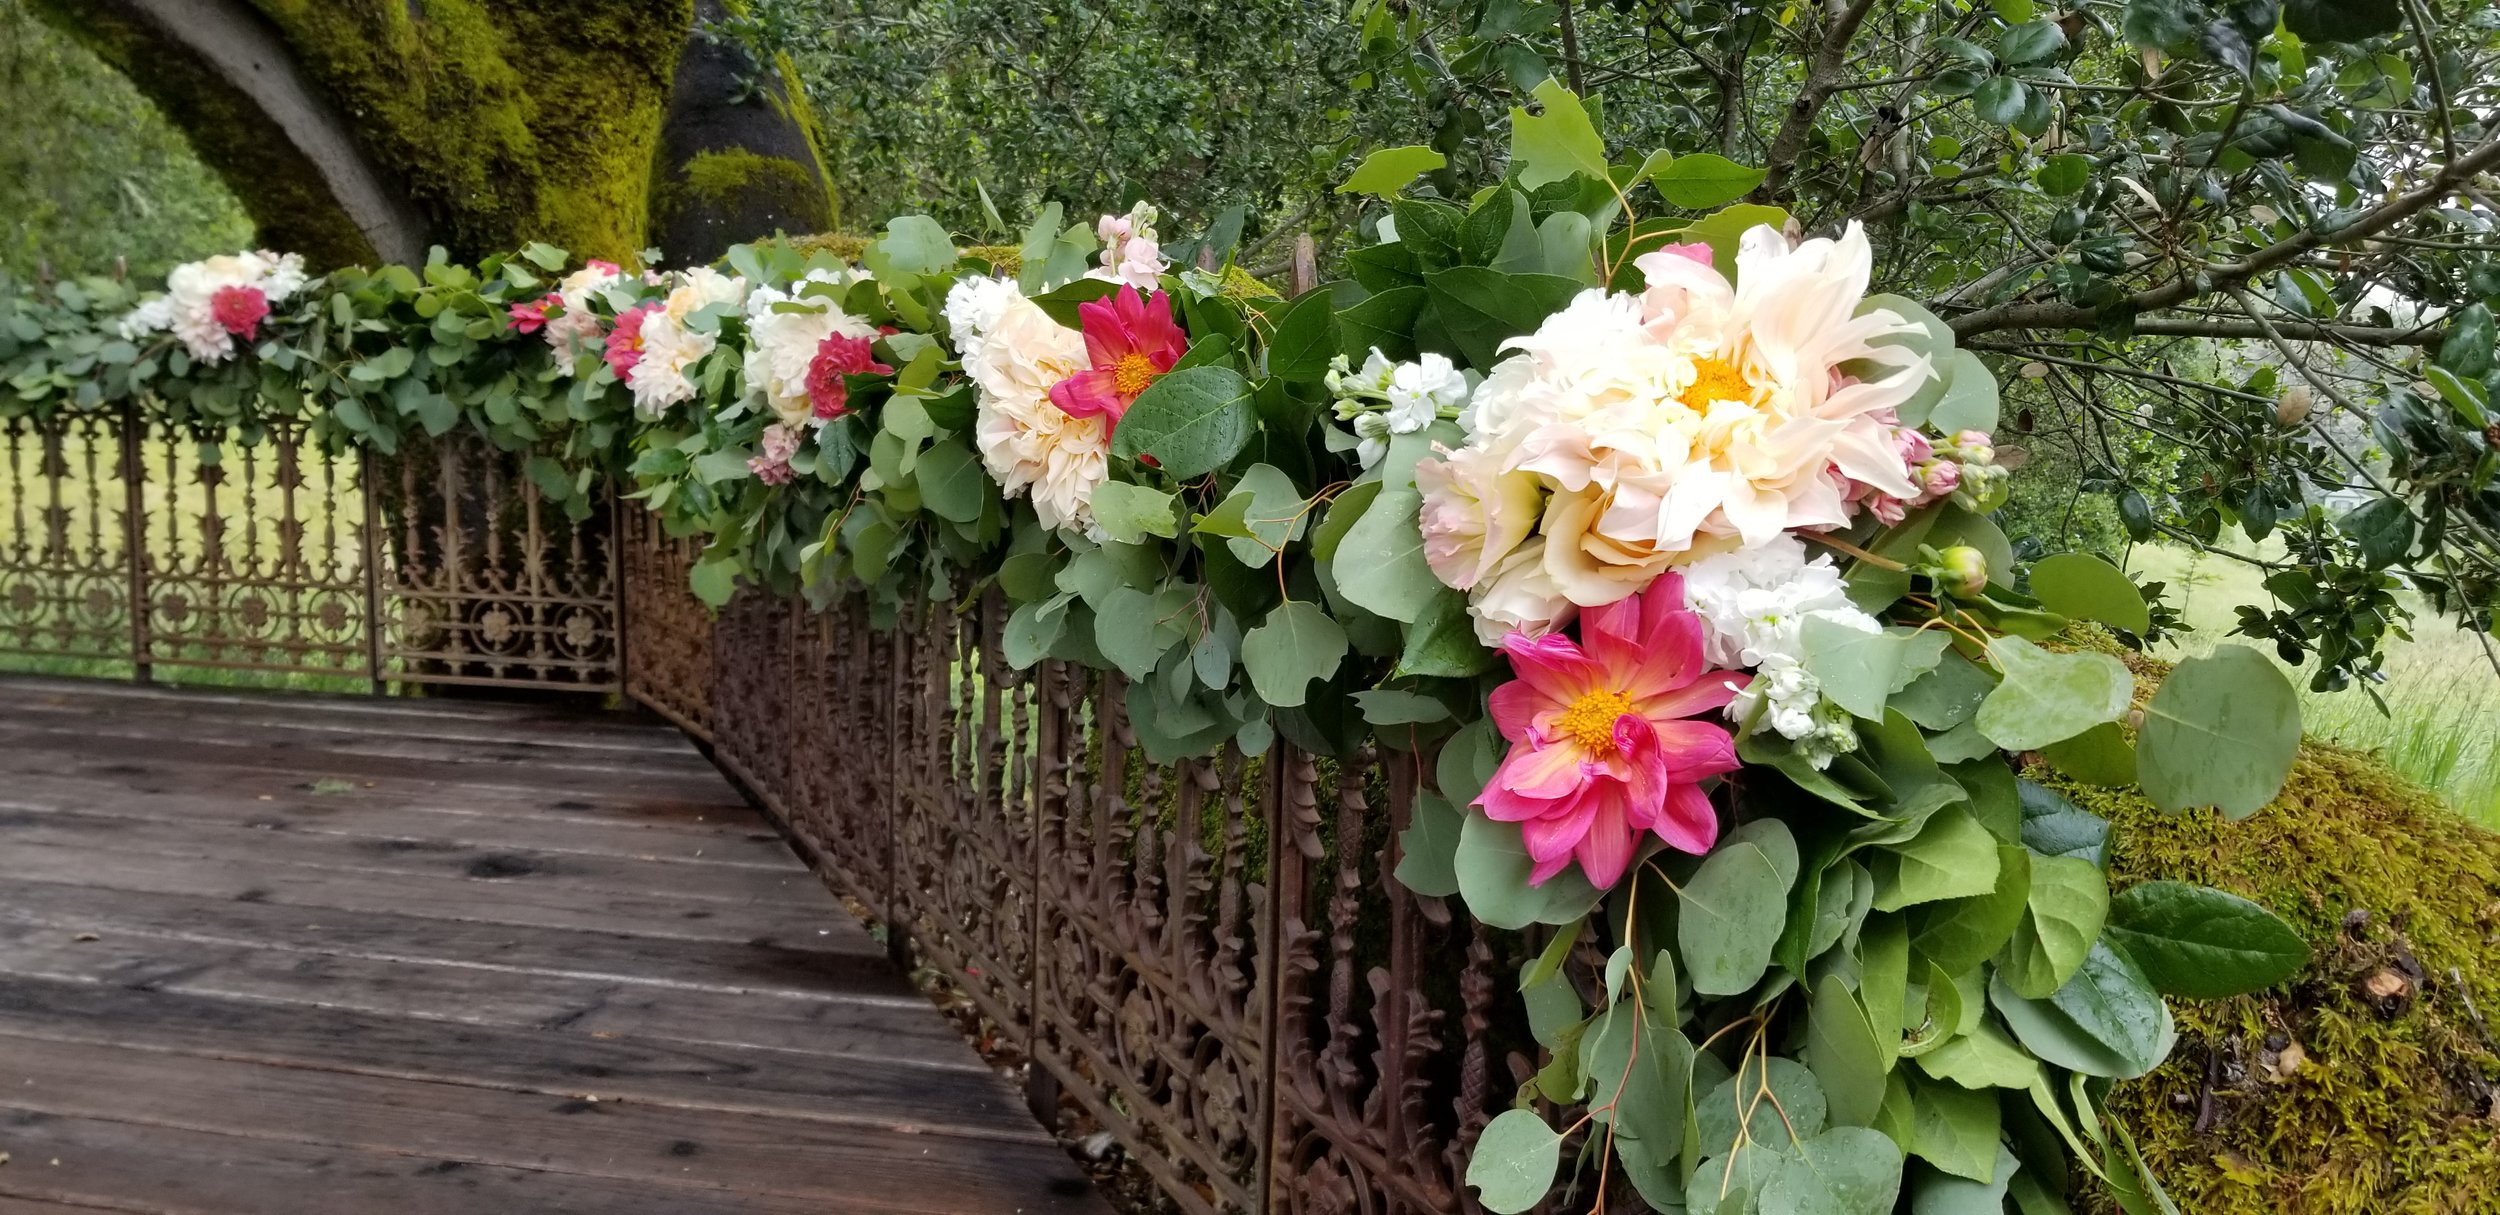 Wedding ceremony garland at Mountain House Estate in Cloverdale. Lush eucalyptus greenery, bright pops of colorful flowers line the fence line for a wine country wedding ceremony